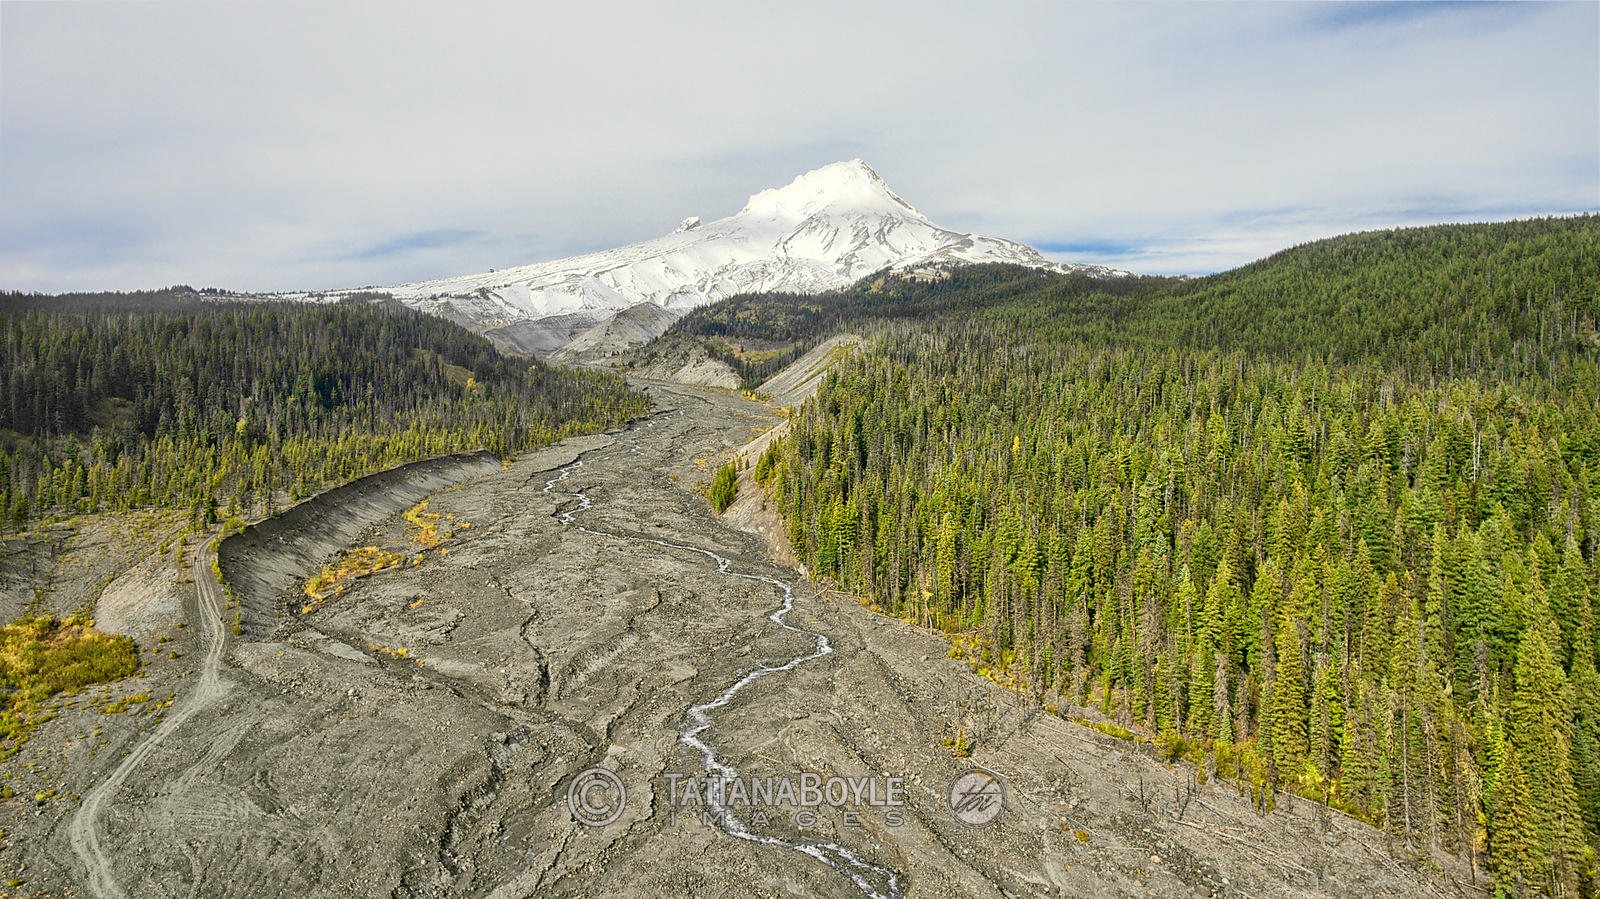 Aeirial view of Southern macroslope of Mt. Hood, Oregon, U.S.A.